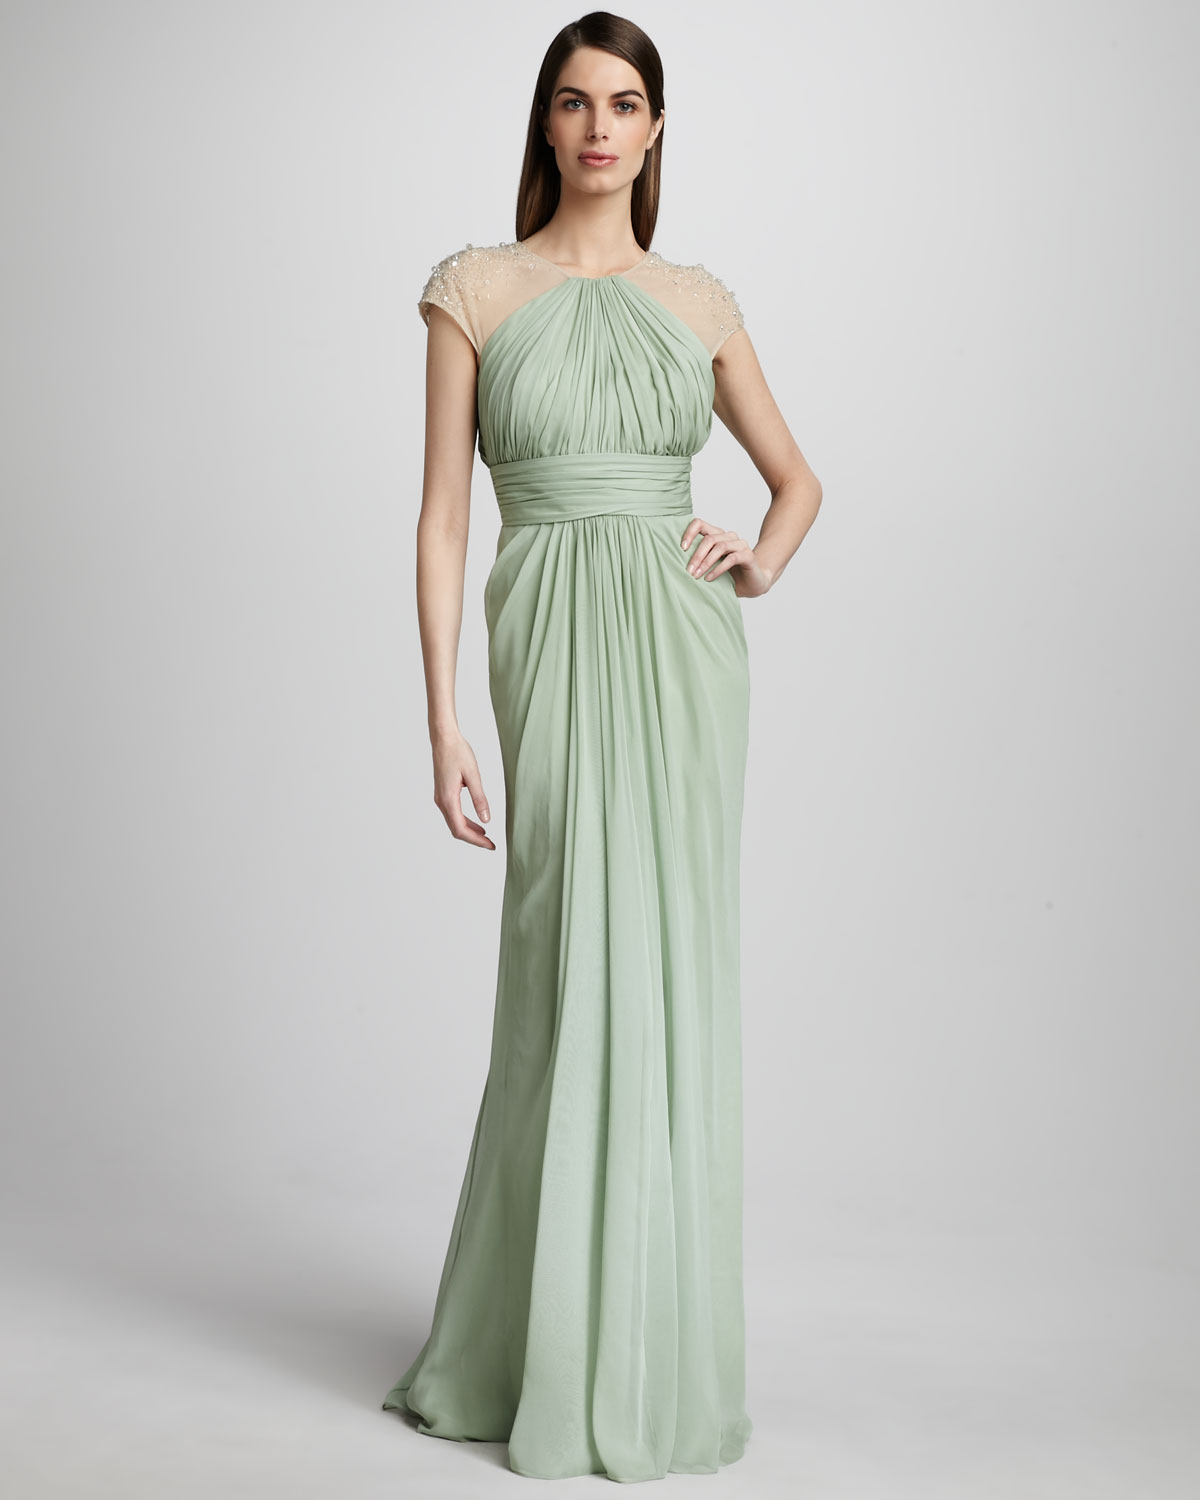 Unique Badgley Mischka Pastel Petunia Gown Image - Images for ...